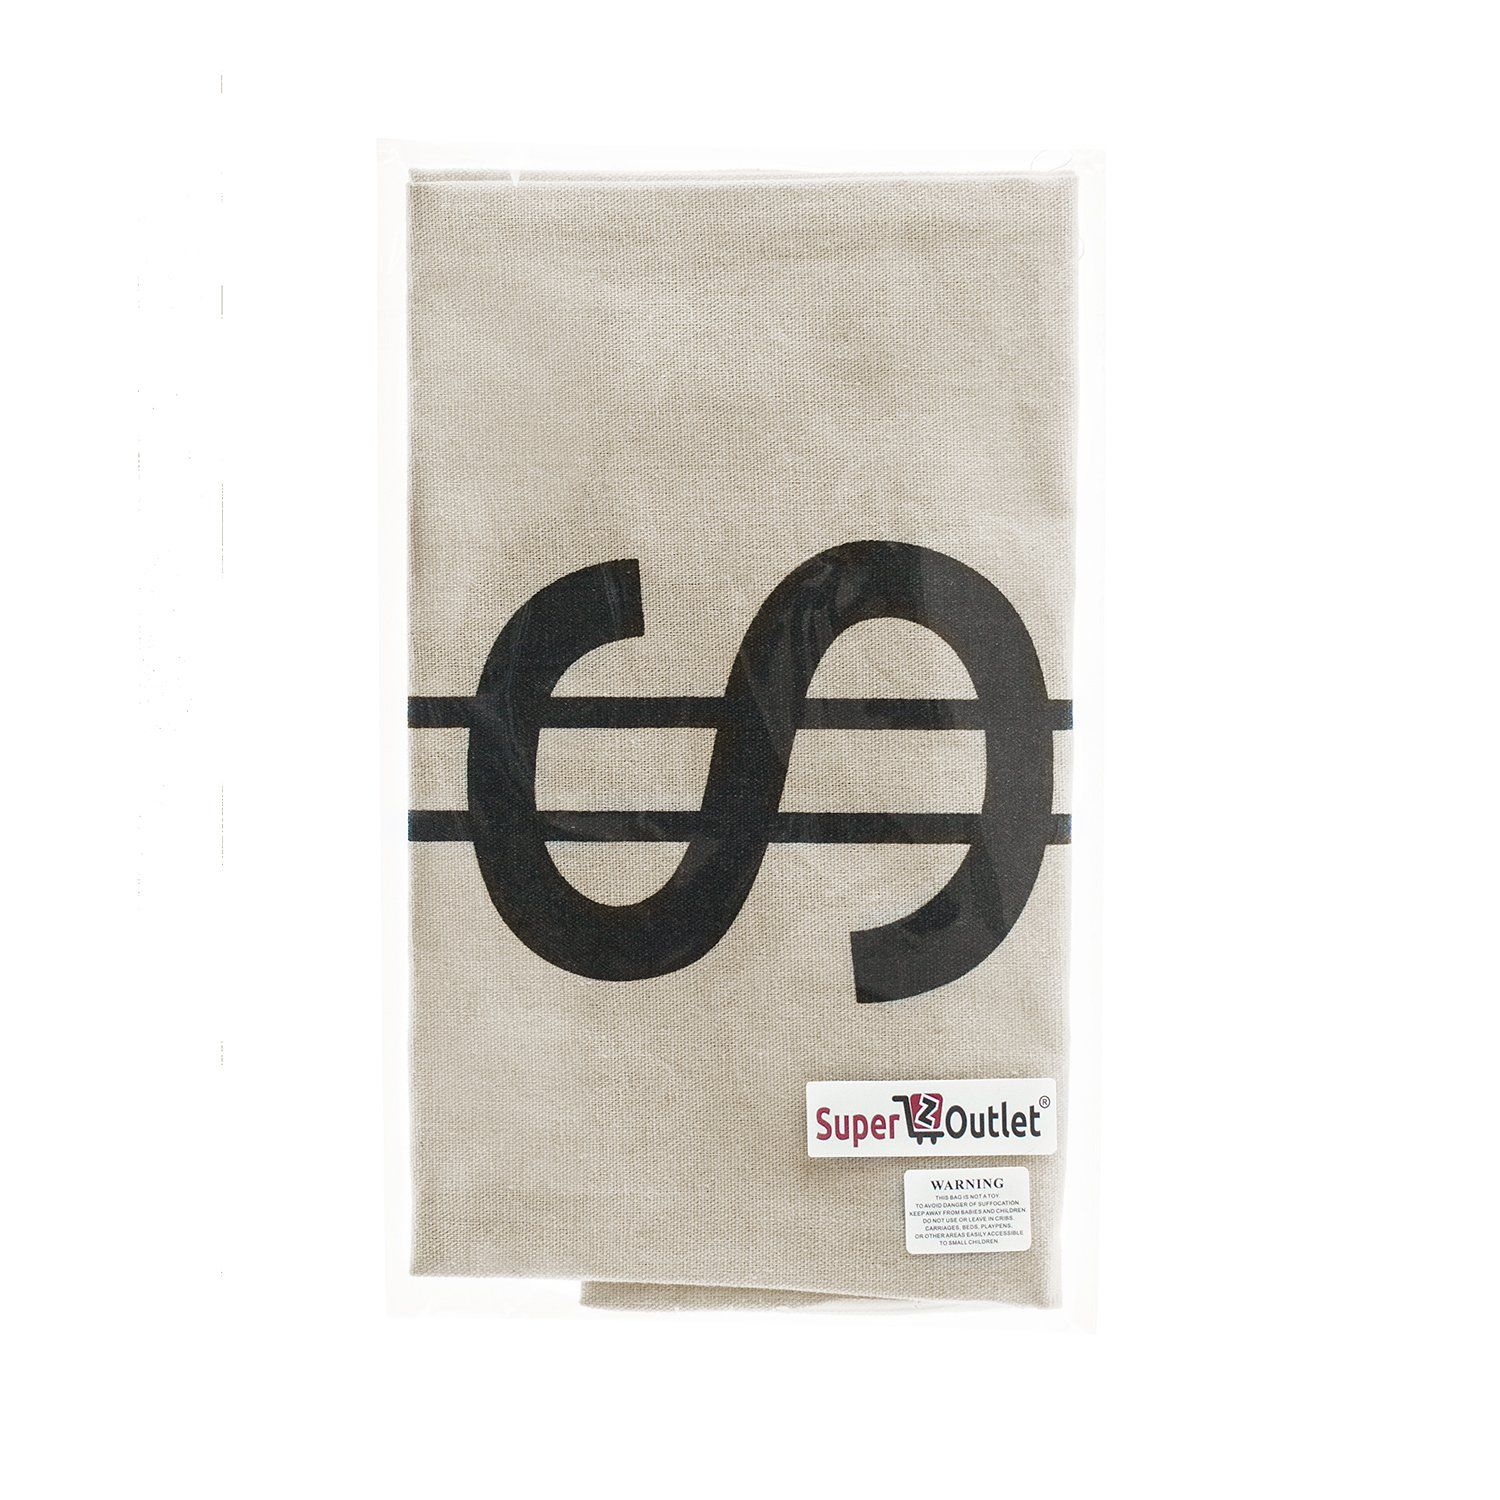 6944398ba03f Super Z Outlet Large Canvas Natural Money Bag Pouch with Drawstring Closure  and Dollar Sign Design for Toy Party Favors Bank Robber Cowboy Pirate Theme  ...